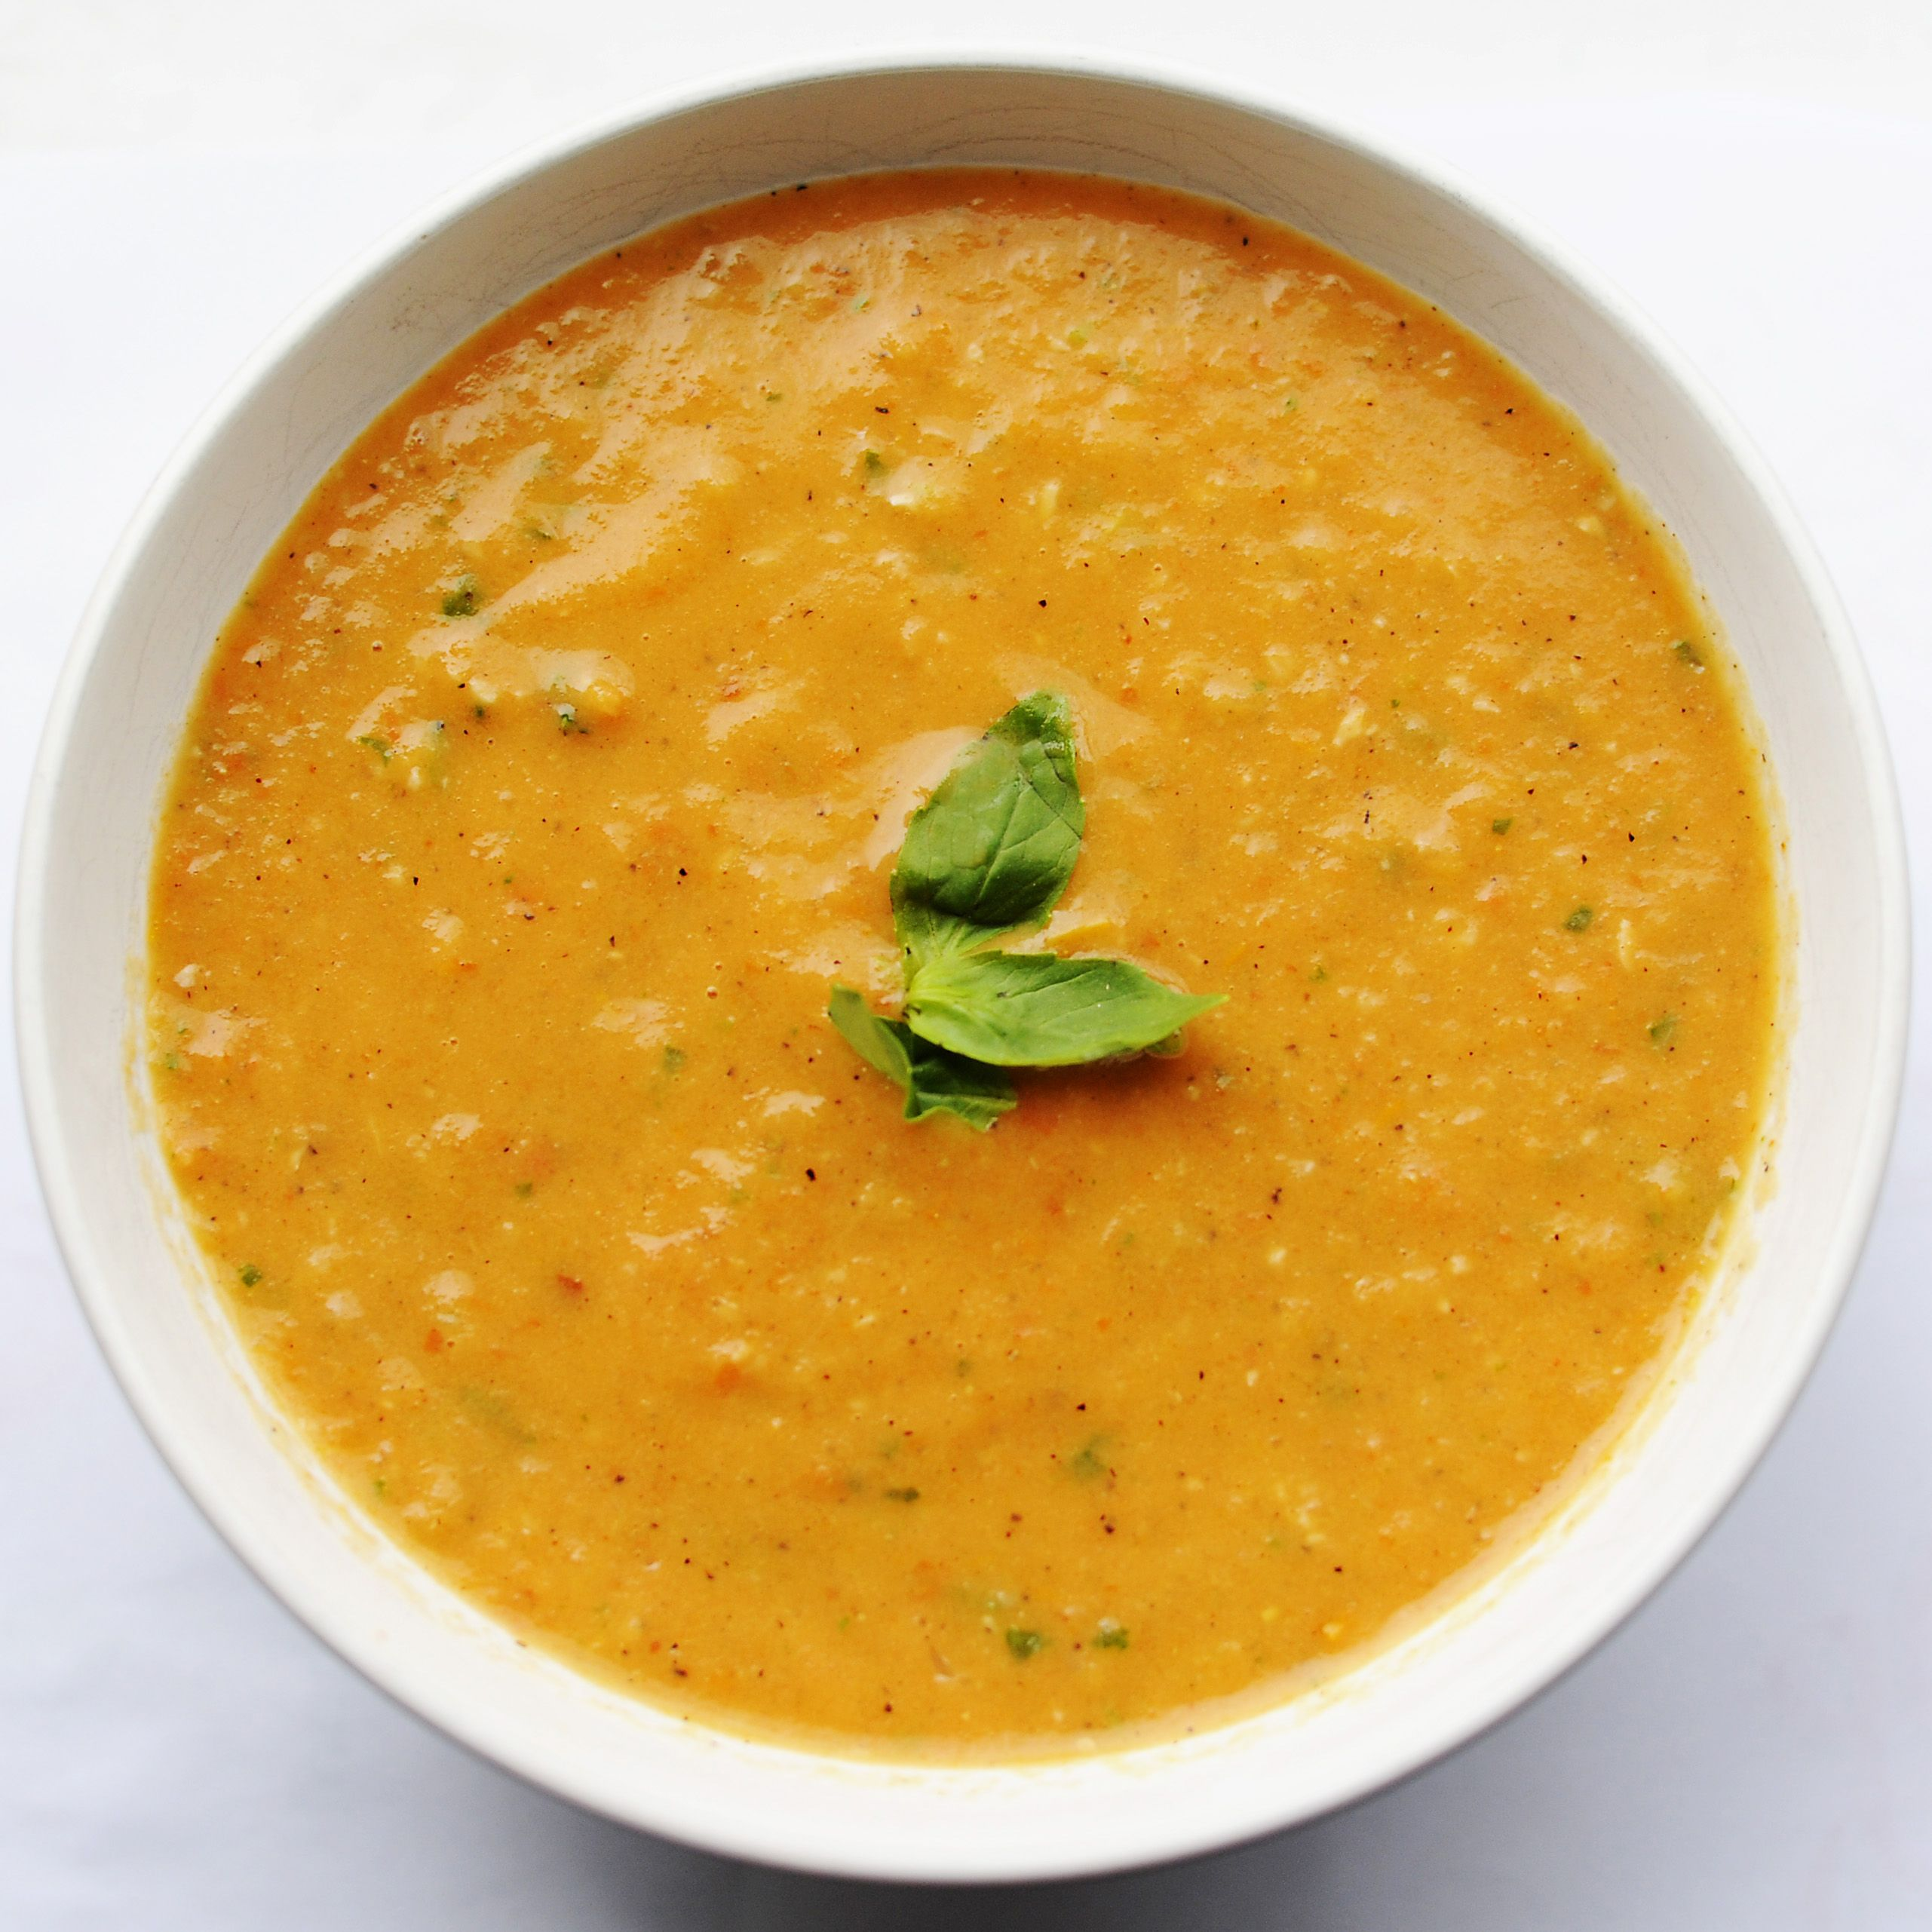 Amazing Paleo Roasted Tomato Bisque! My Family (even My 4